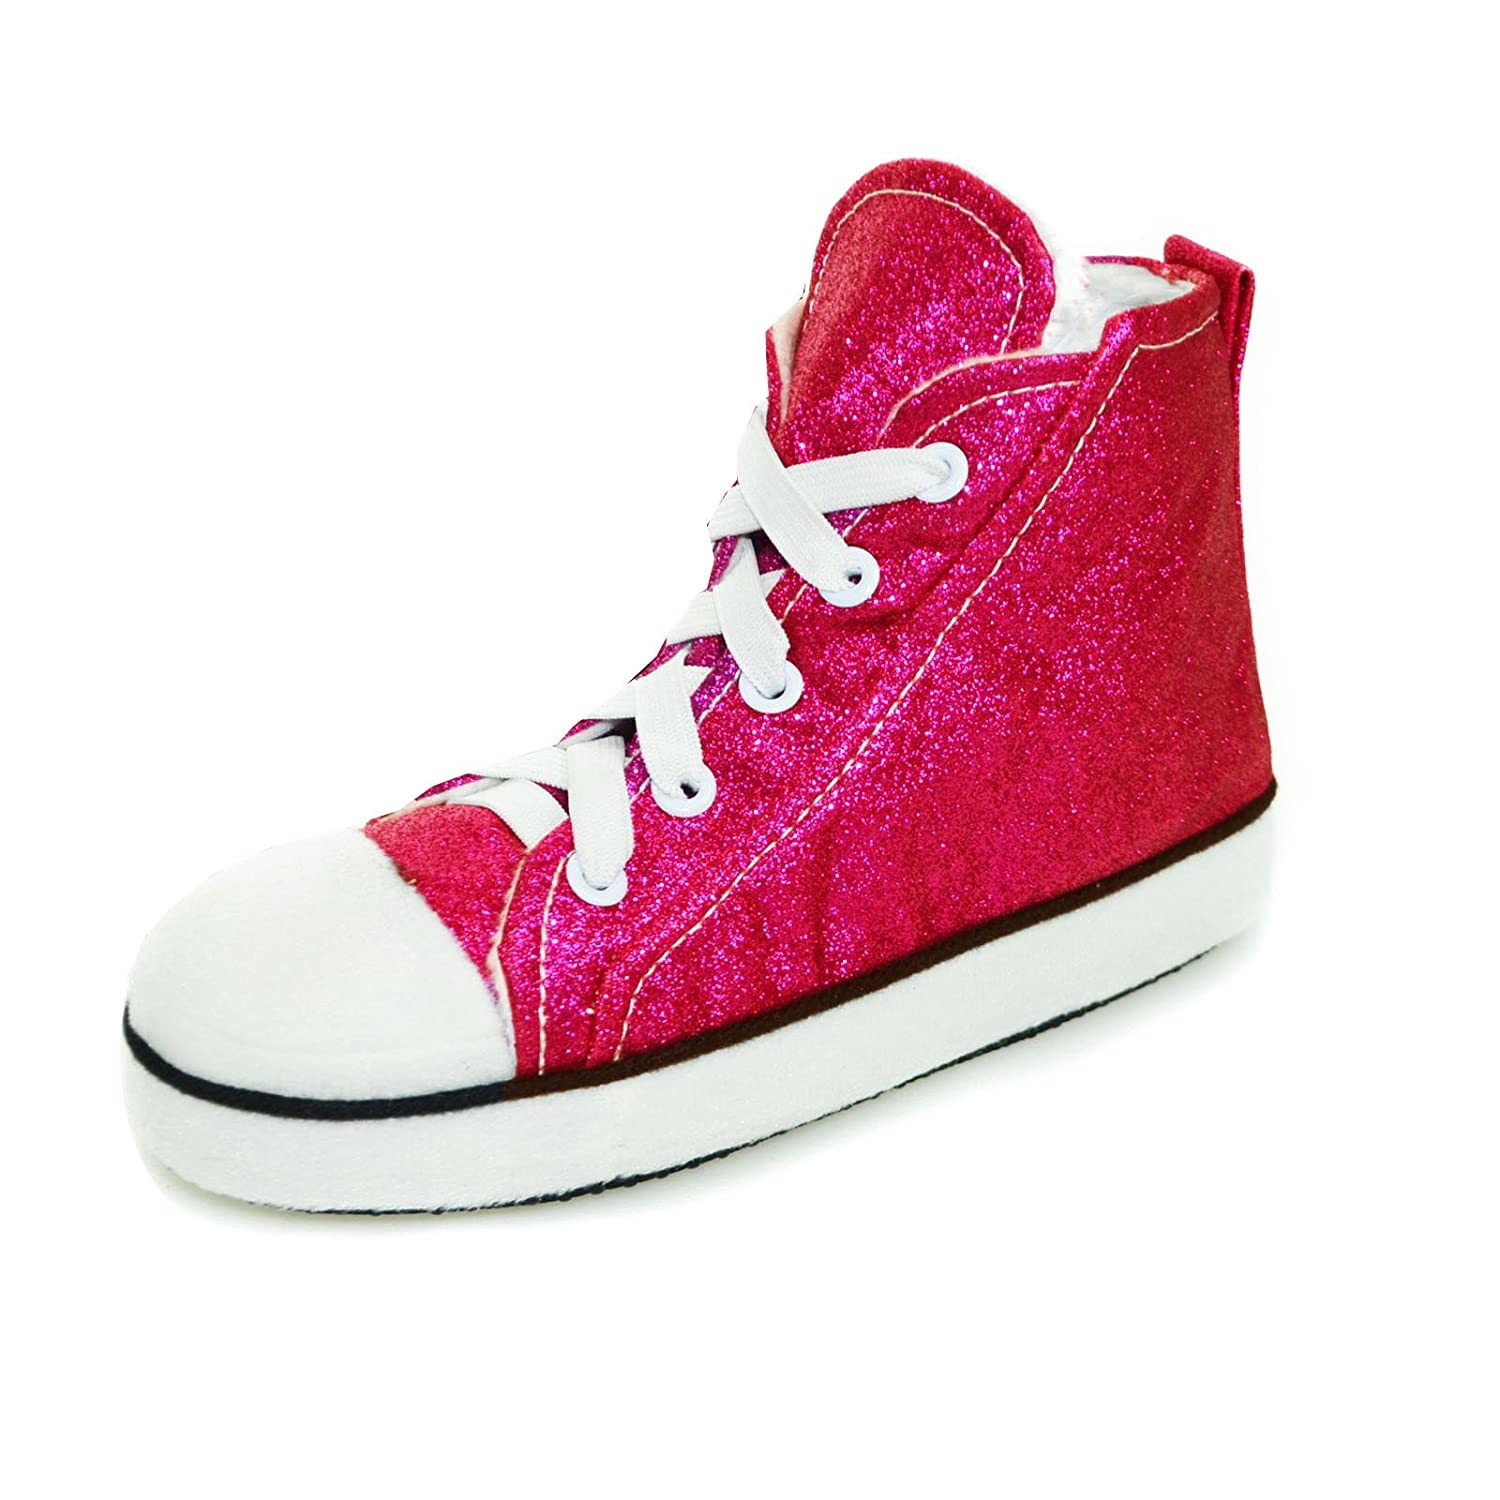 f7c05ff4efe Something Special Mens Womens   Kids Runner High Top Fleece Lined Slipper  Boots  Amazon.co.uk  Shoes   Bags